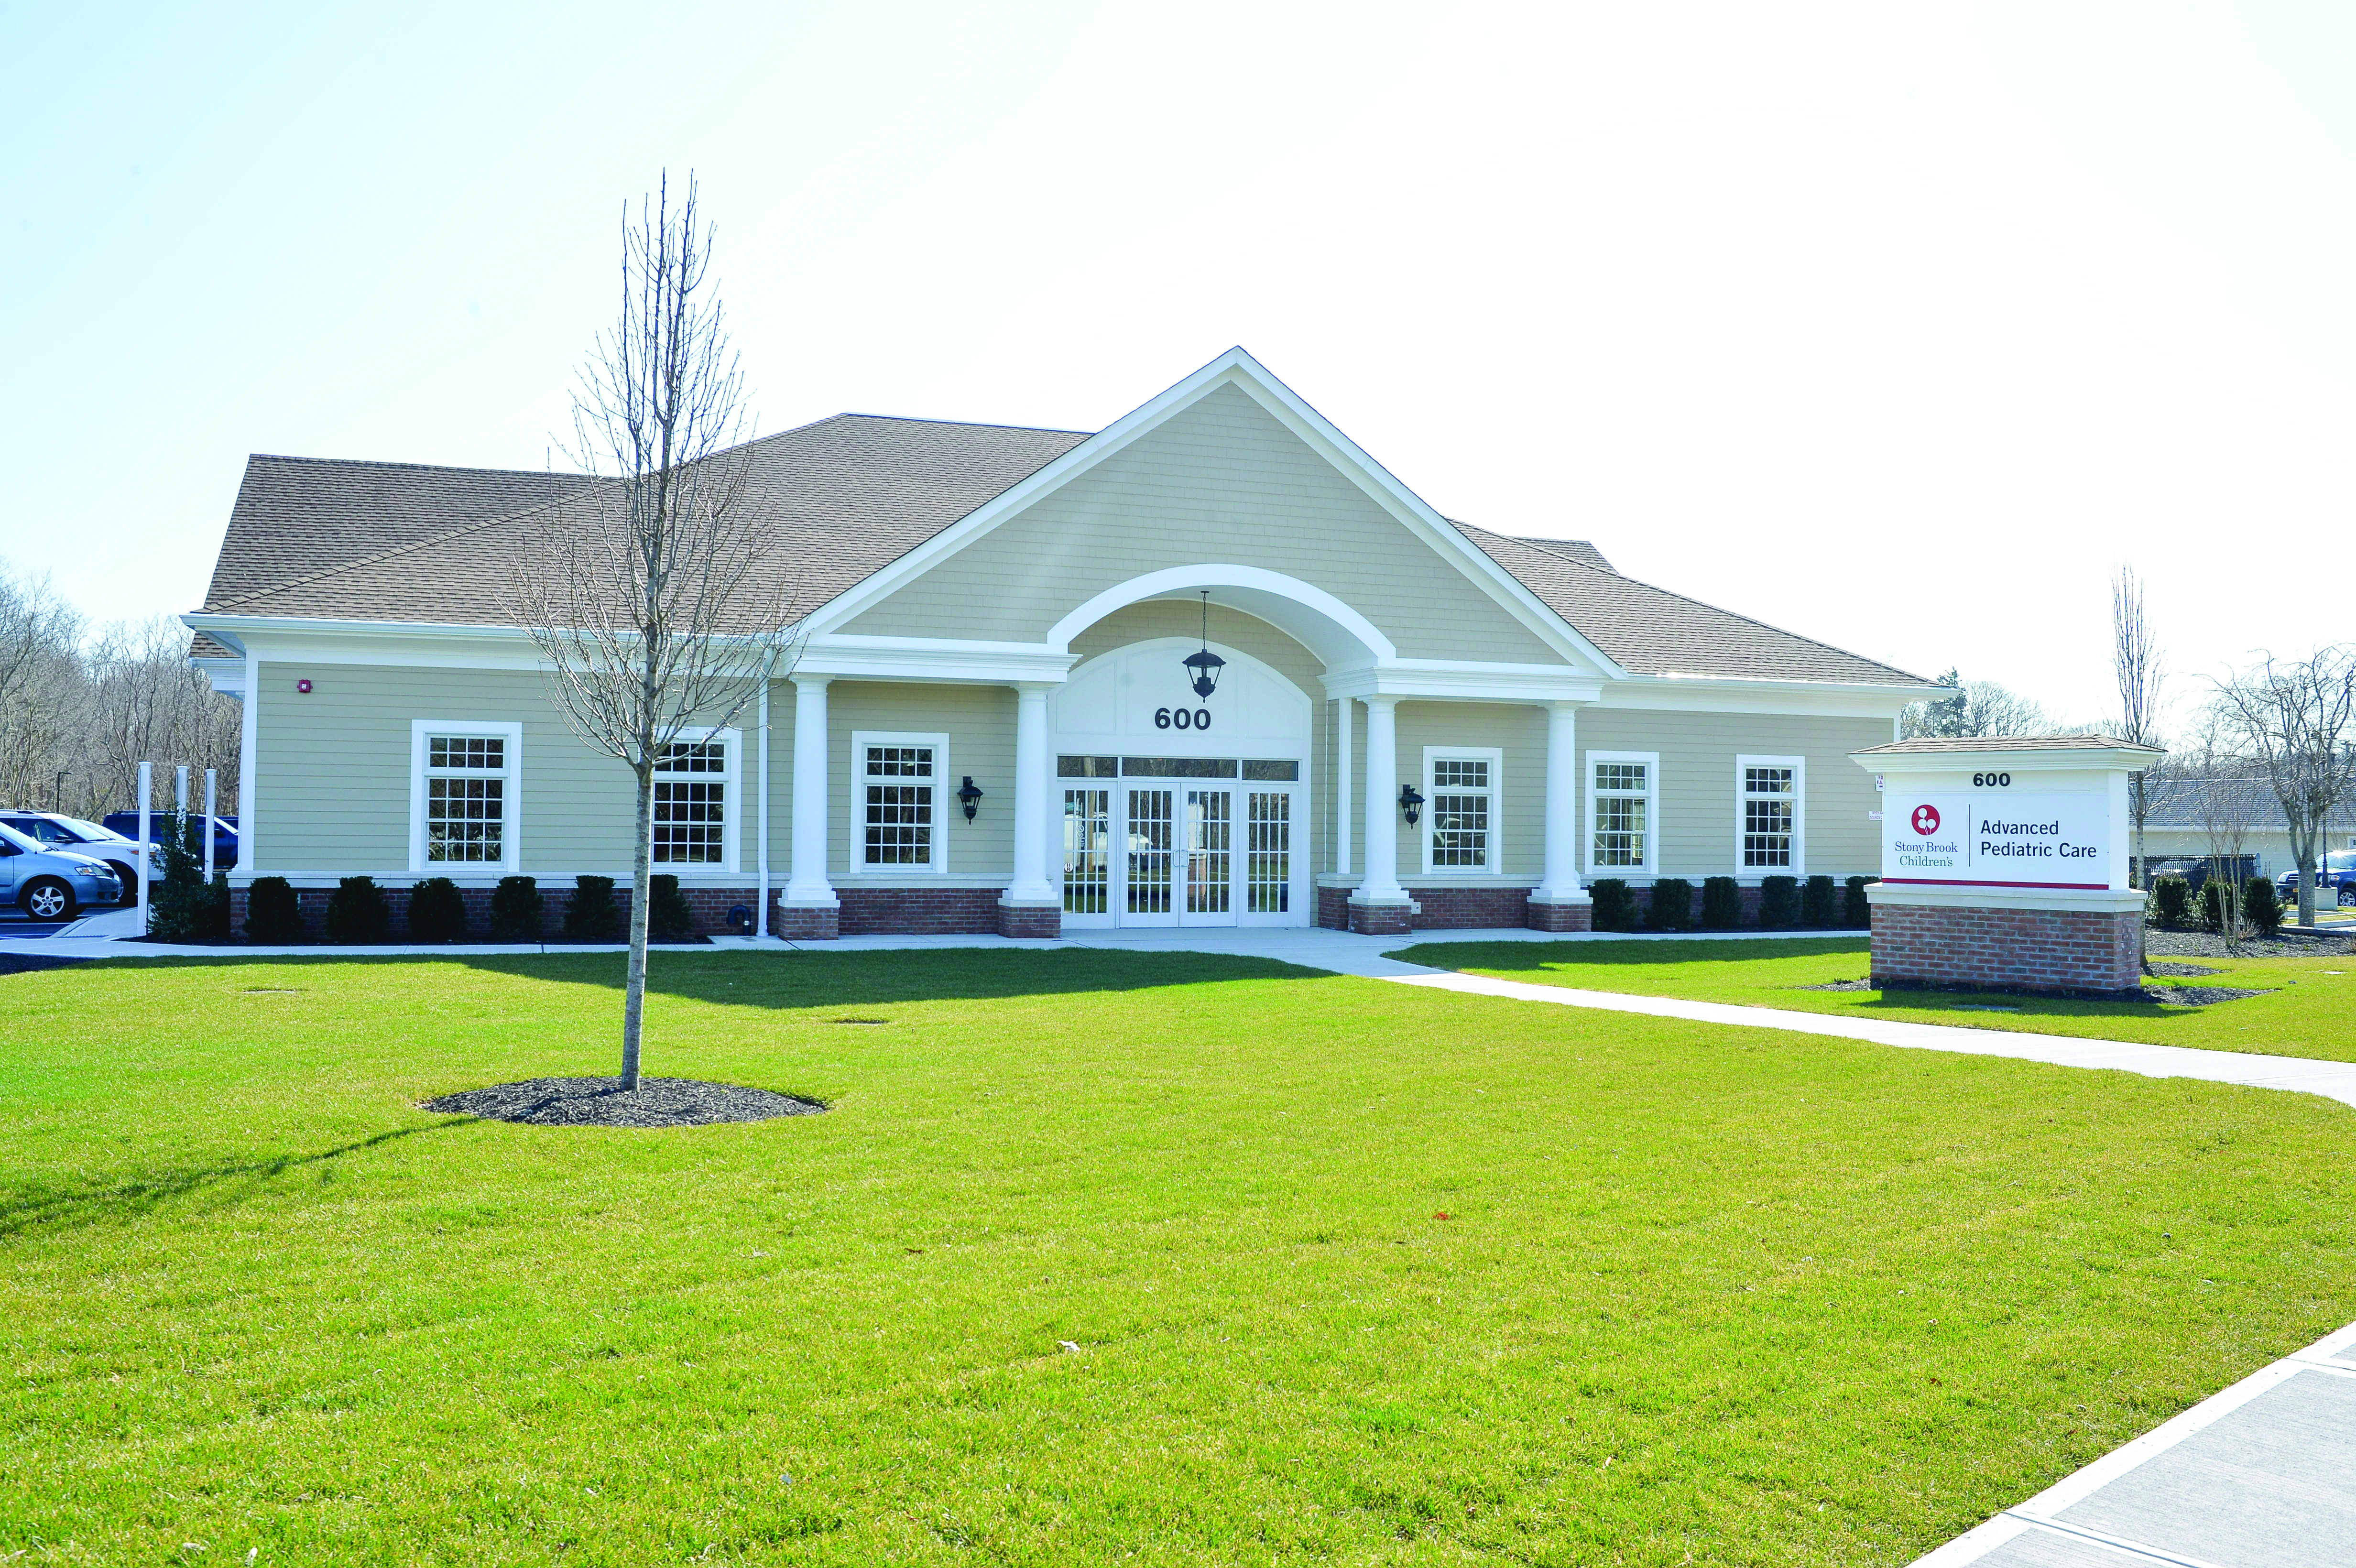 New Office Opened in Center Moriches | Stony Brook Children's